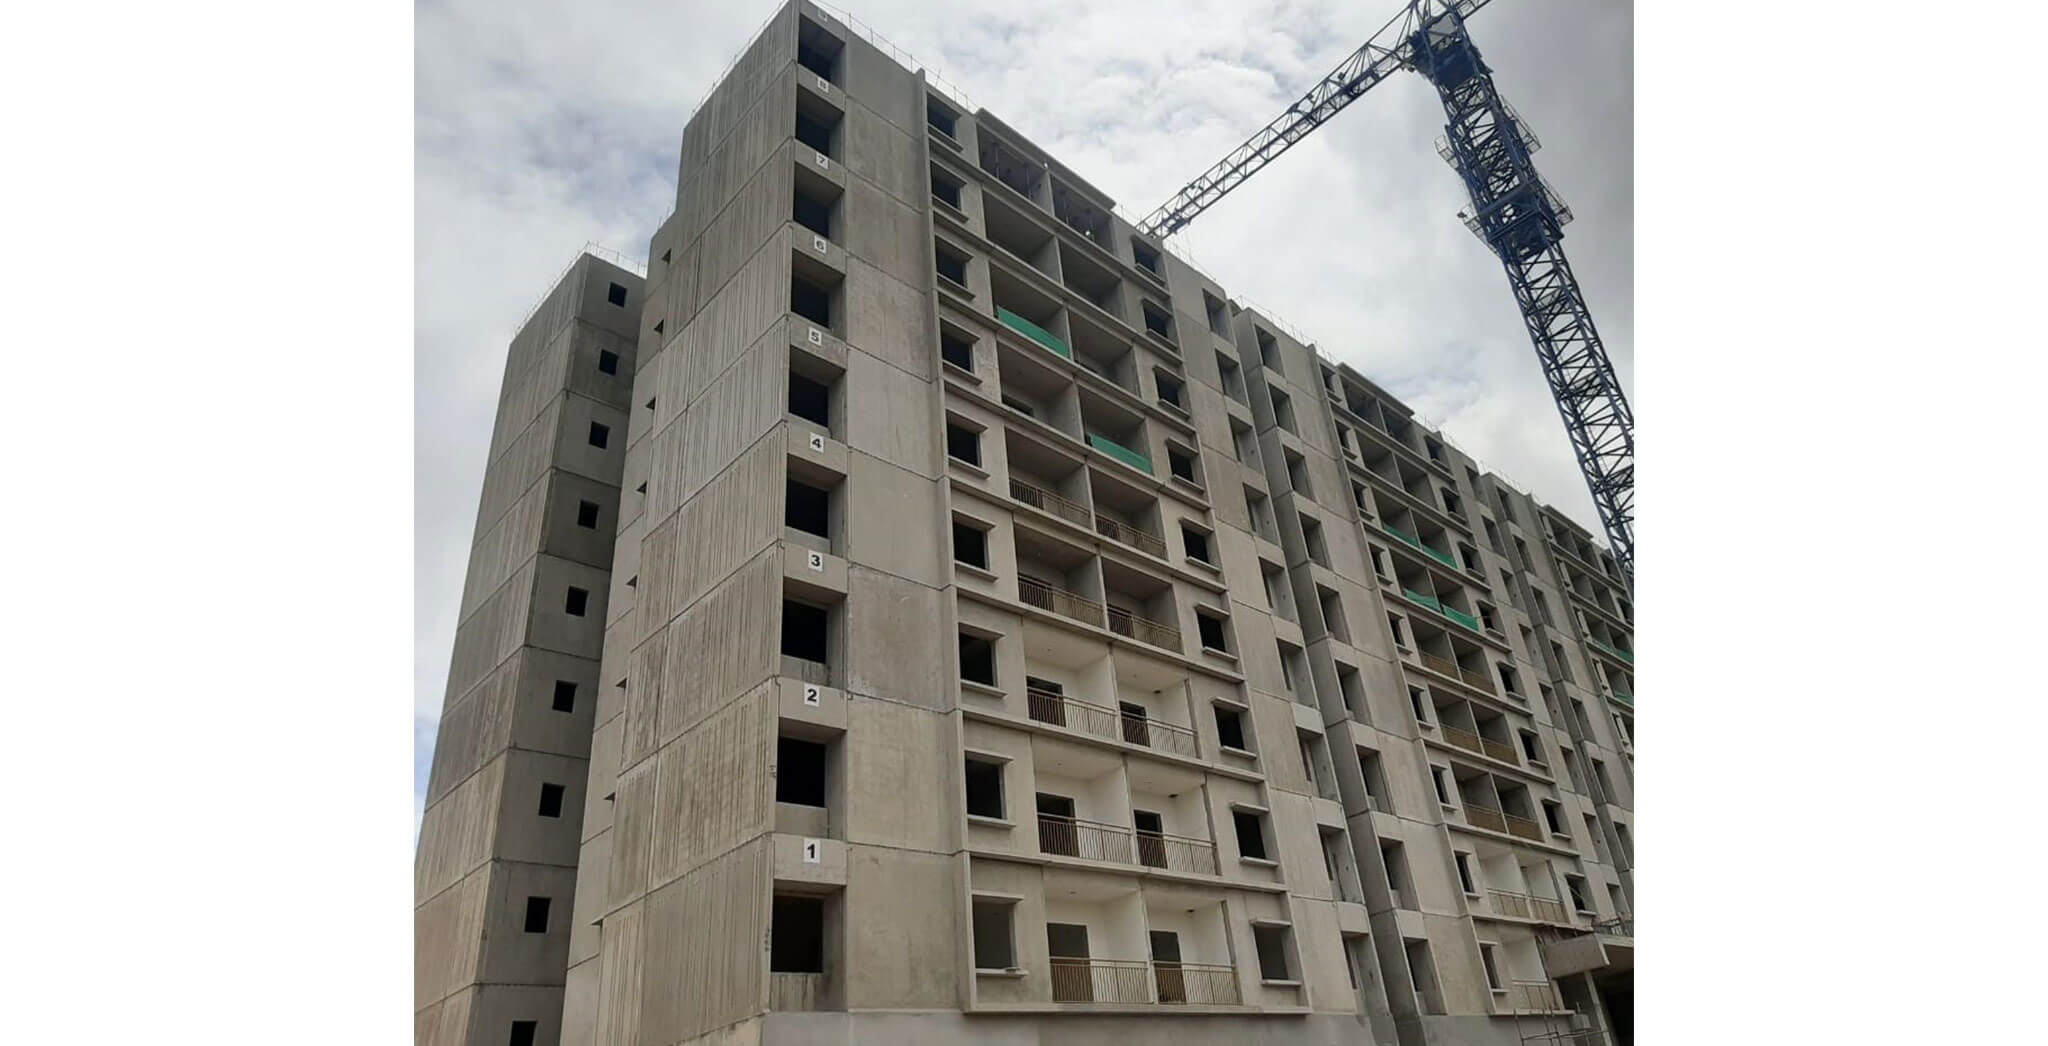 Jun 2021 - A-wing: On commencement of ninth floor slab